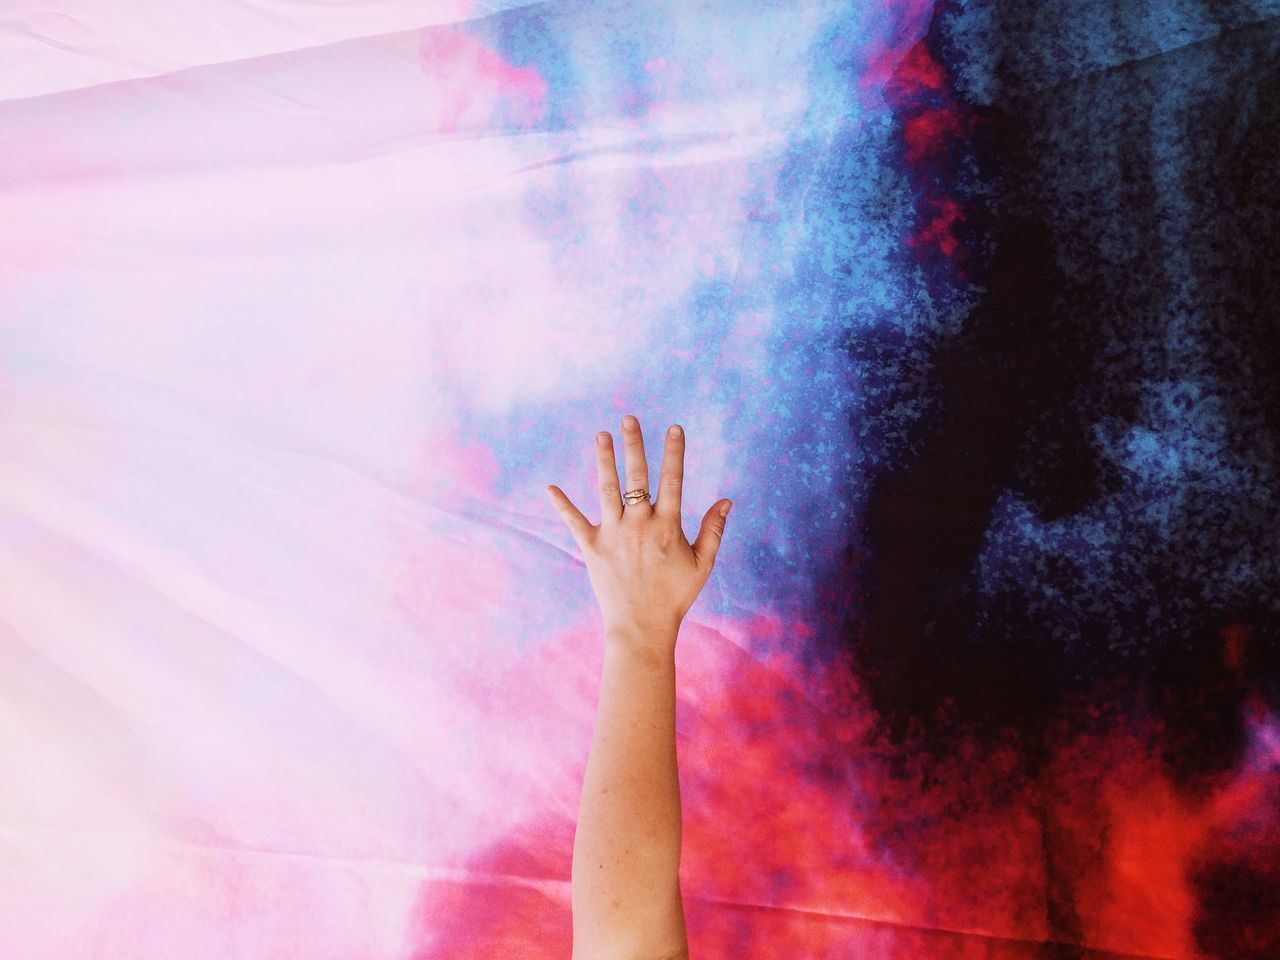 Cropped image of woman with hand raised against textile